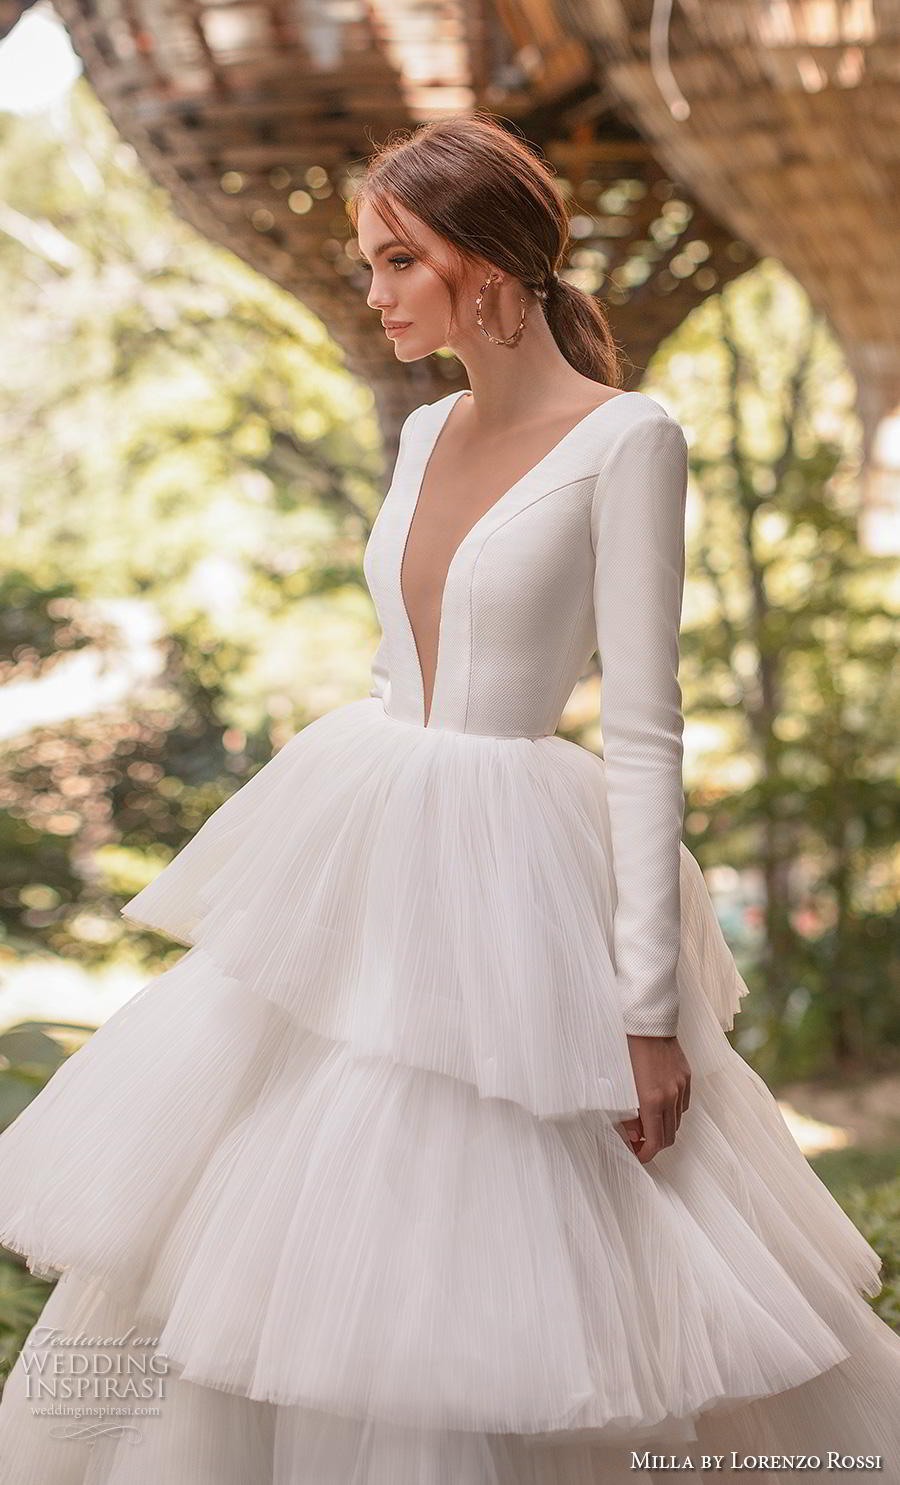 lorenzo-rossi-2019-milla-bridal-long-sleeves-deep-plunging-v-neck-simple-elegant-minimalist-tiered-skirt-ball-gown-a-line-wedding-dress-sheer-button-back-royal-train-1-zv.jpg